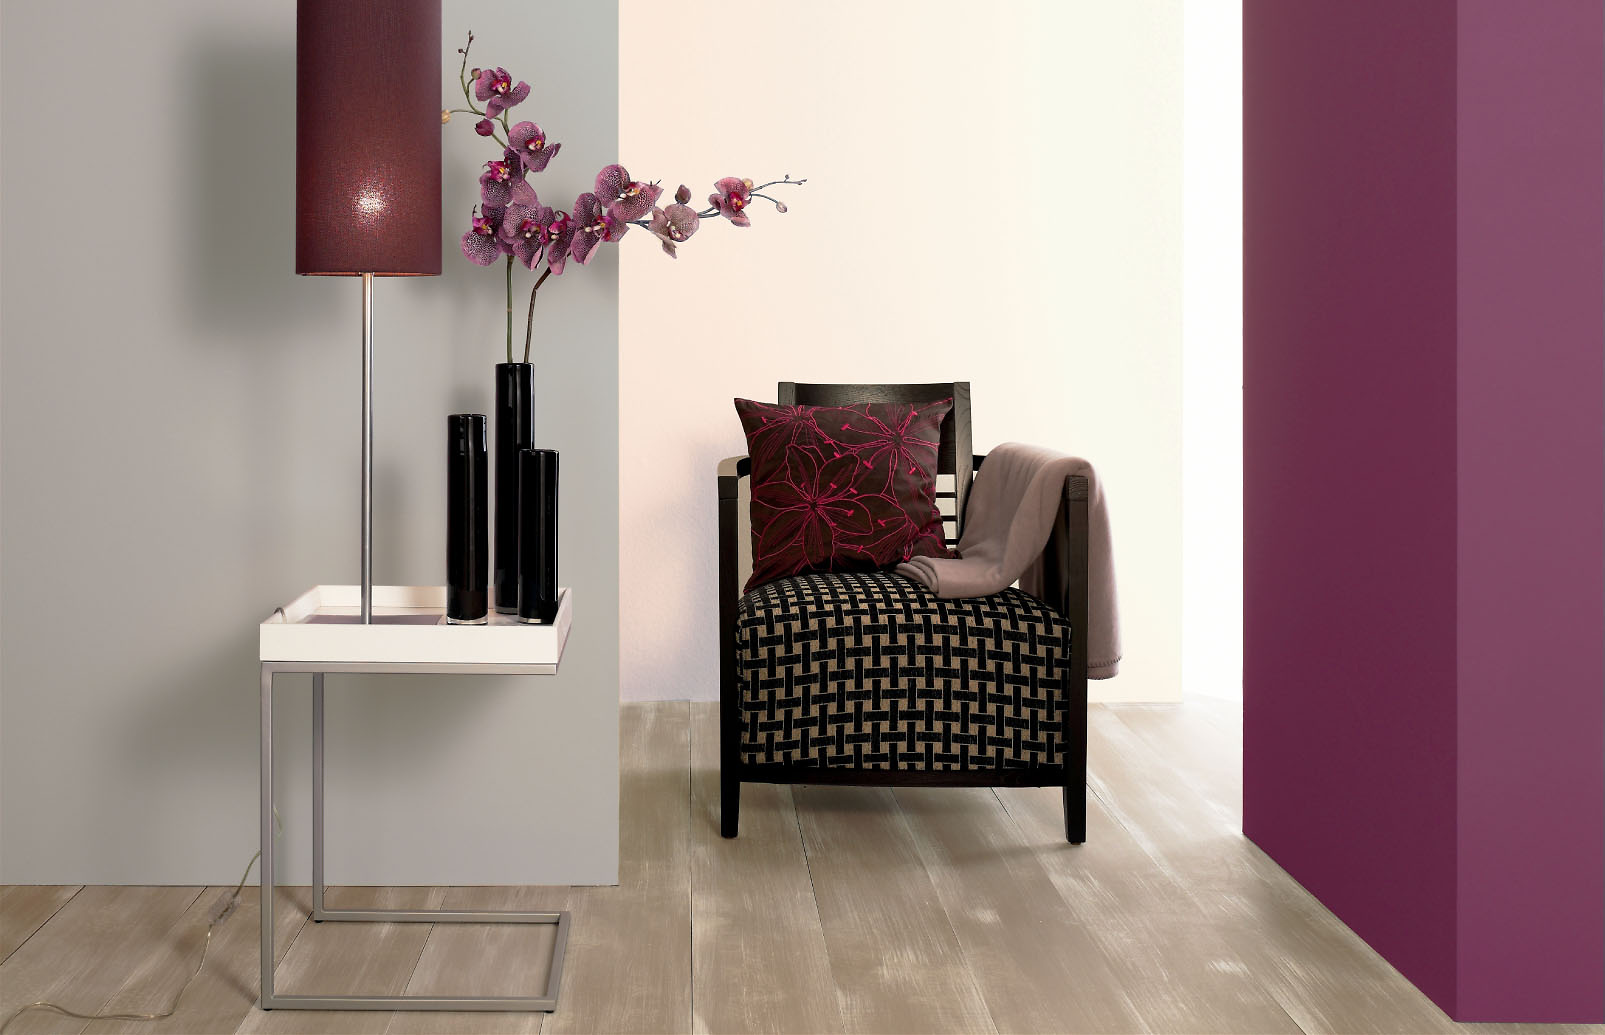 welche farben passen zu einer rosa hose. Black Bedroom Furniture Sets. Home Design Ideas